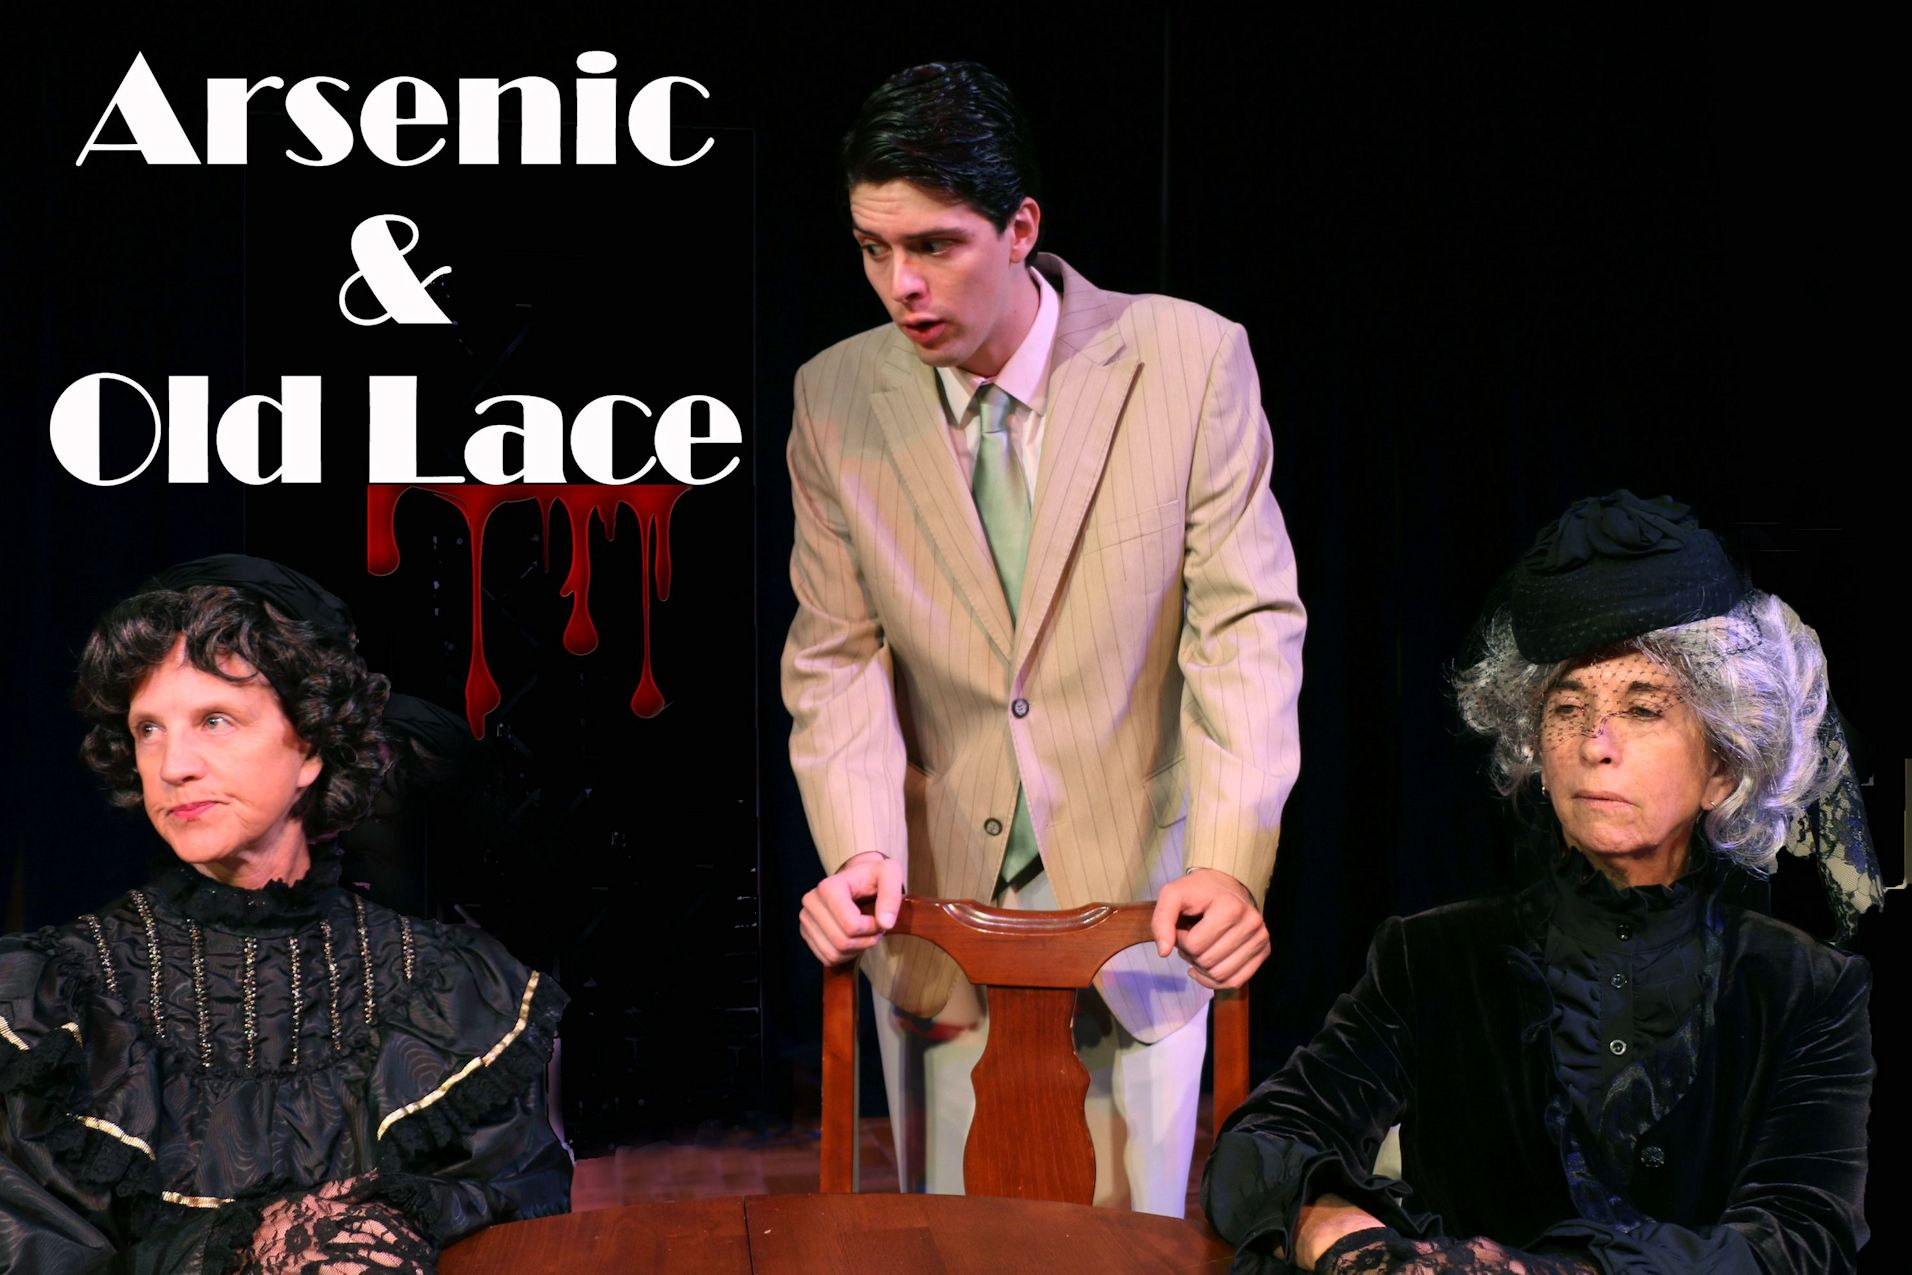 an overview of the play arsenic and old lace Arsenic and old lace review a rsenic and old lace is a play by american playwright joseph kesselring it was written in 1939 and opened public performances in january 10, 1941.